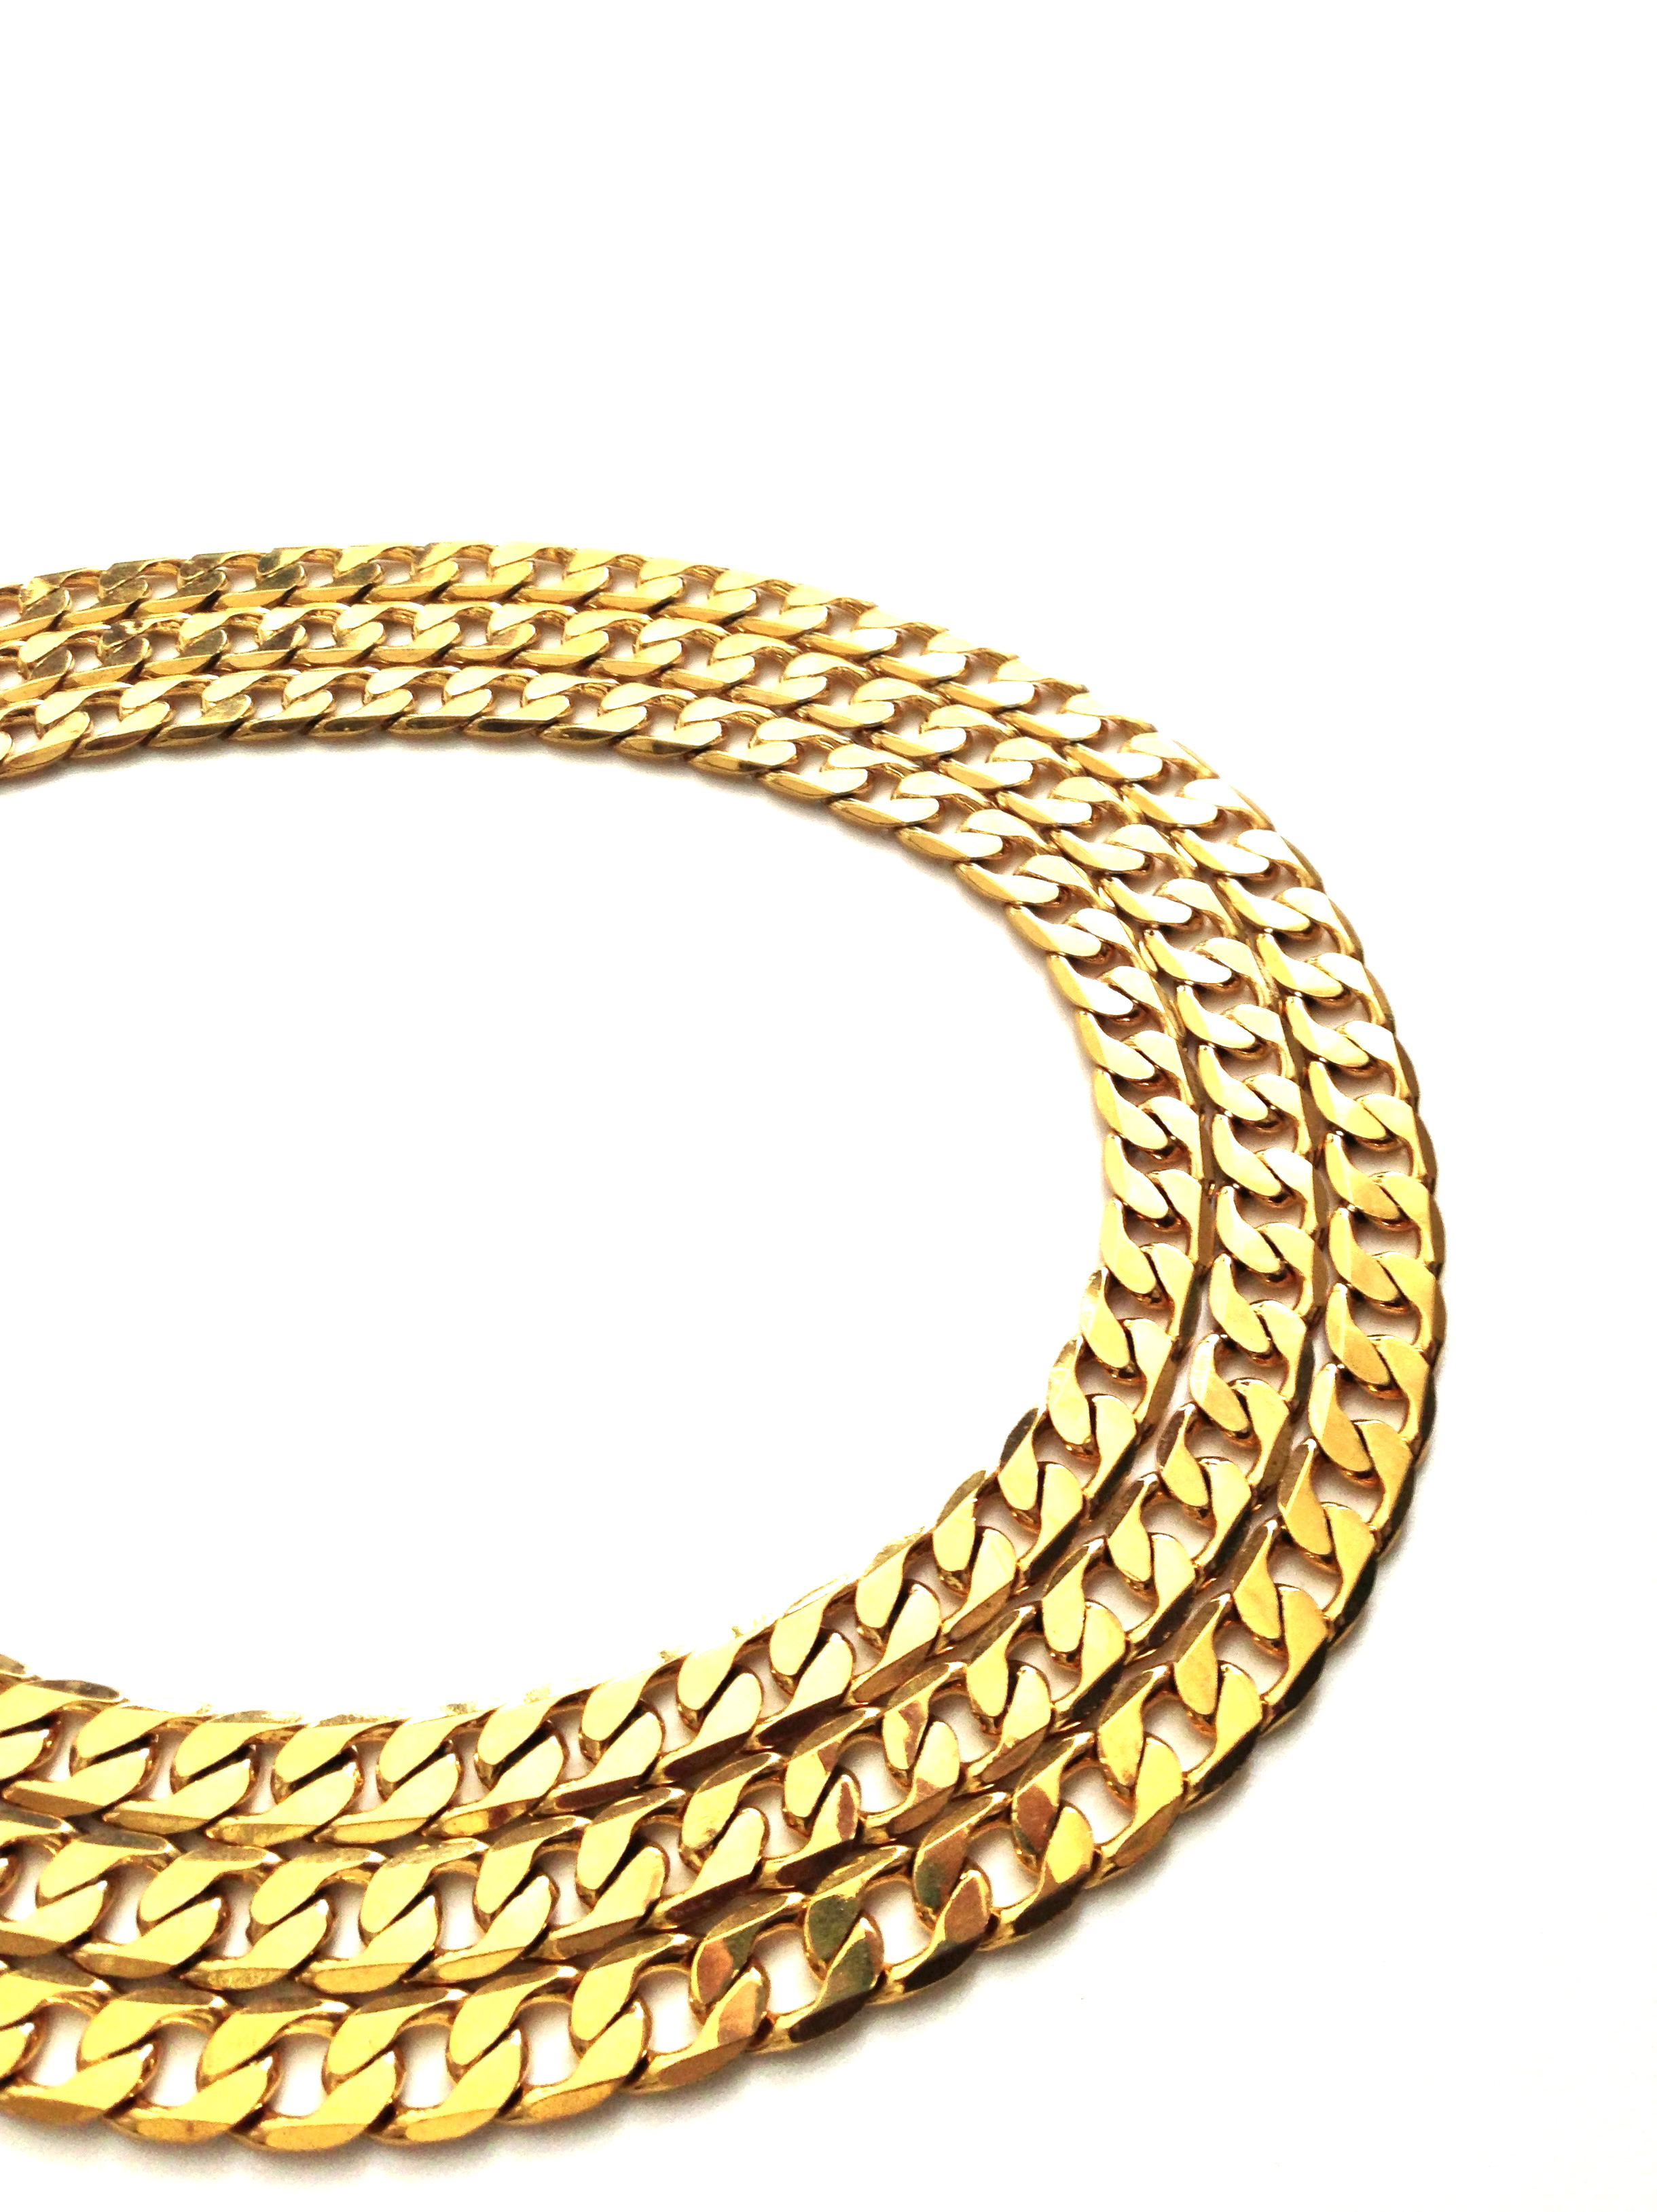 NECKLACE - gold – MARRIN COSTELLO JEWELRY